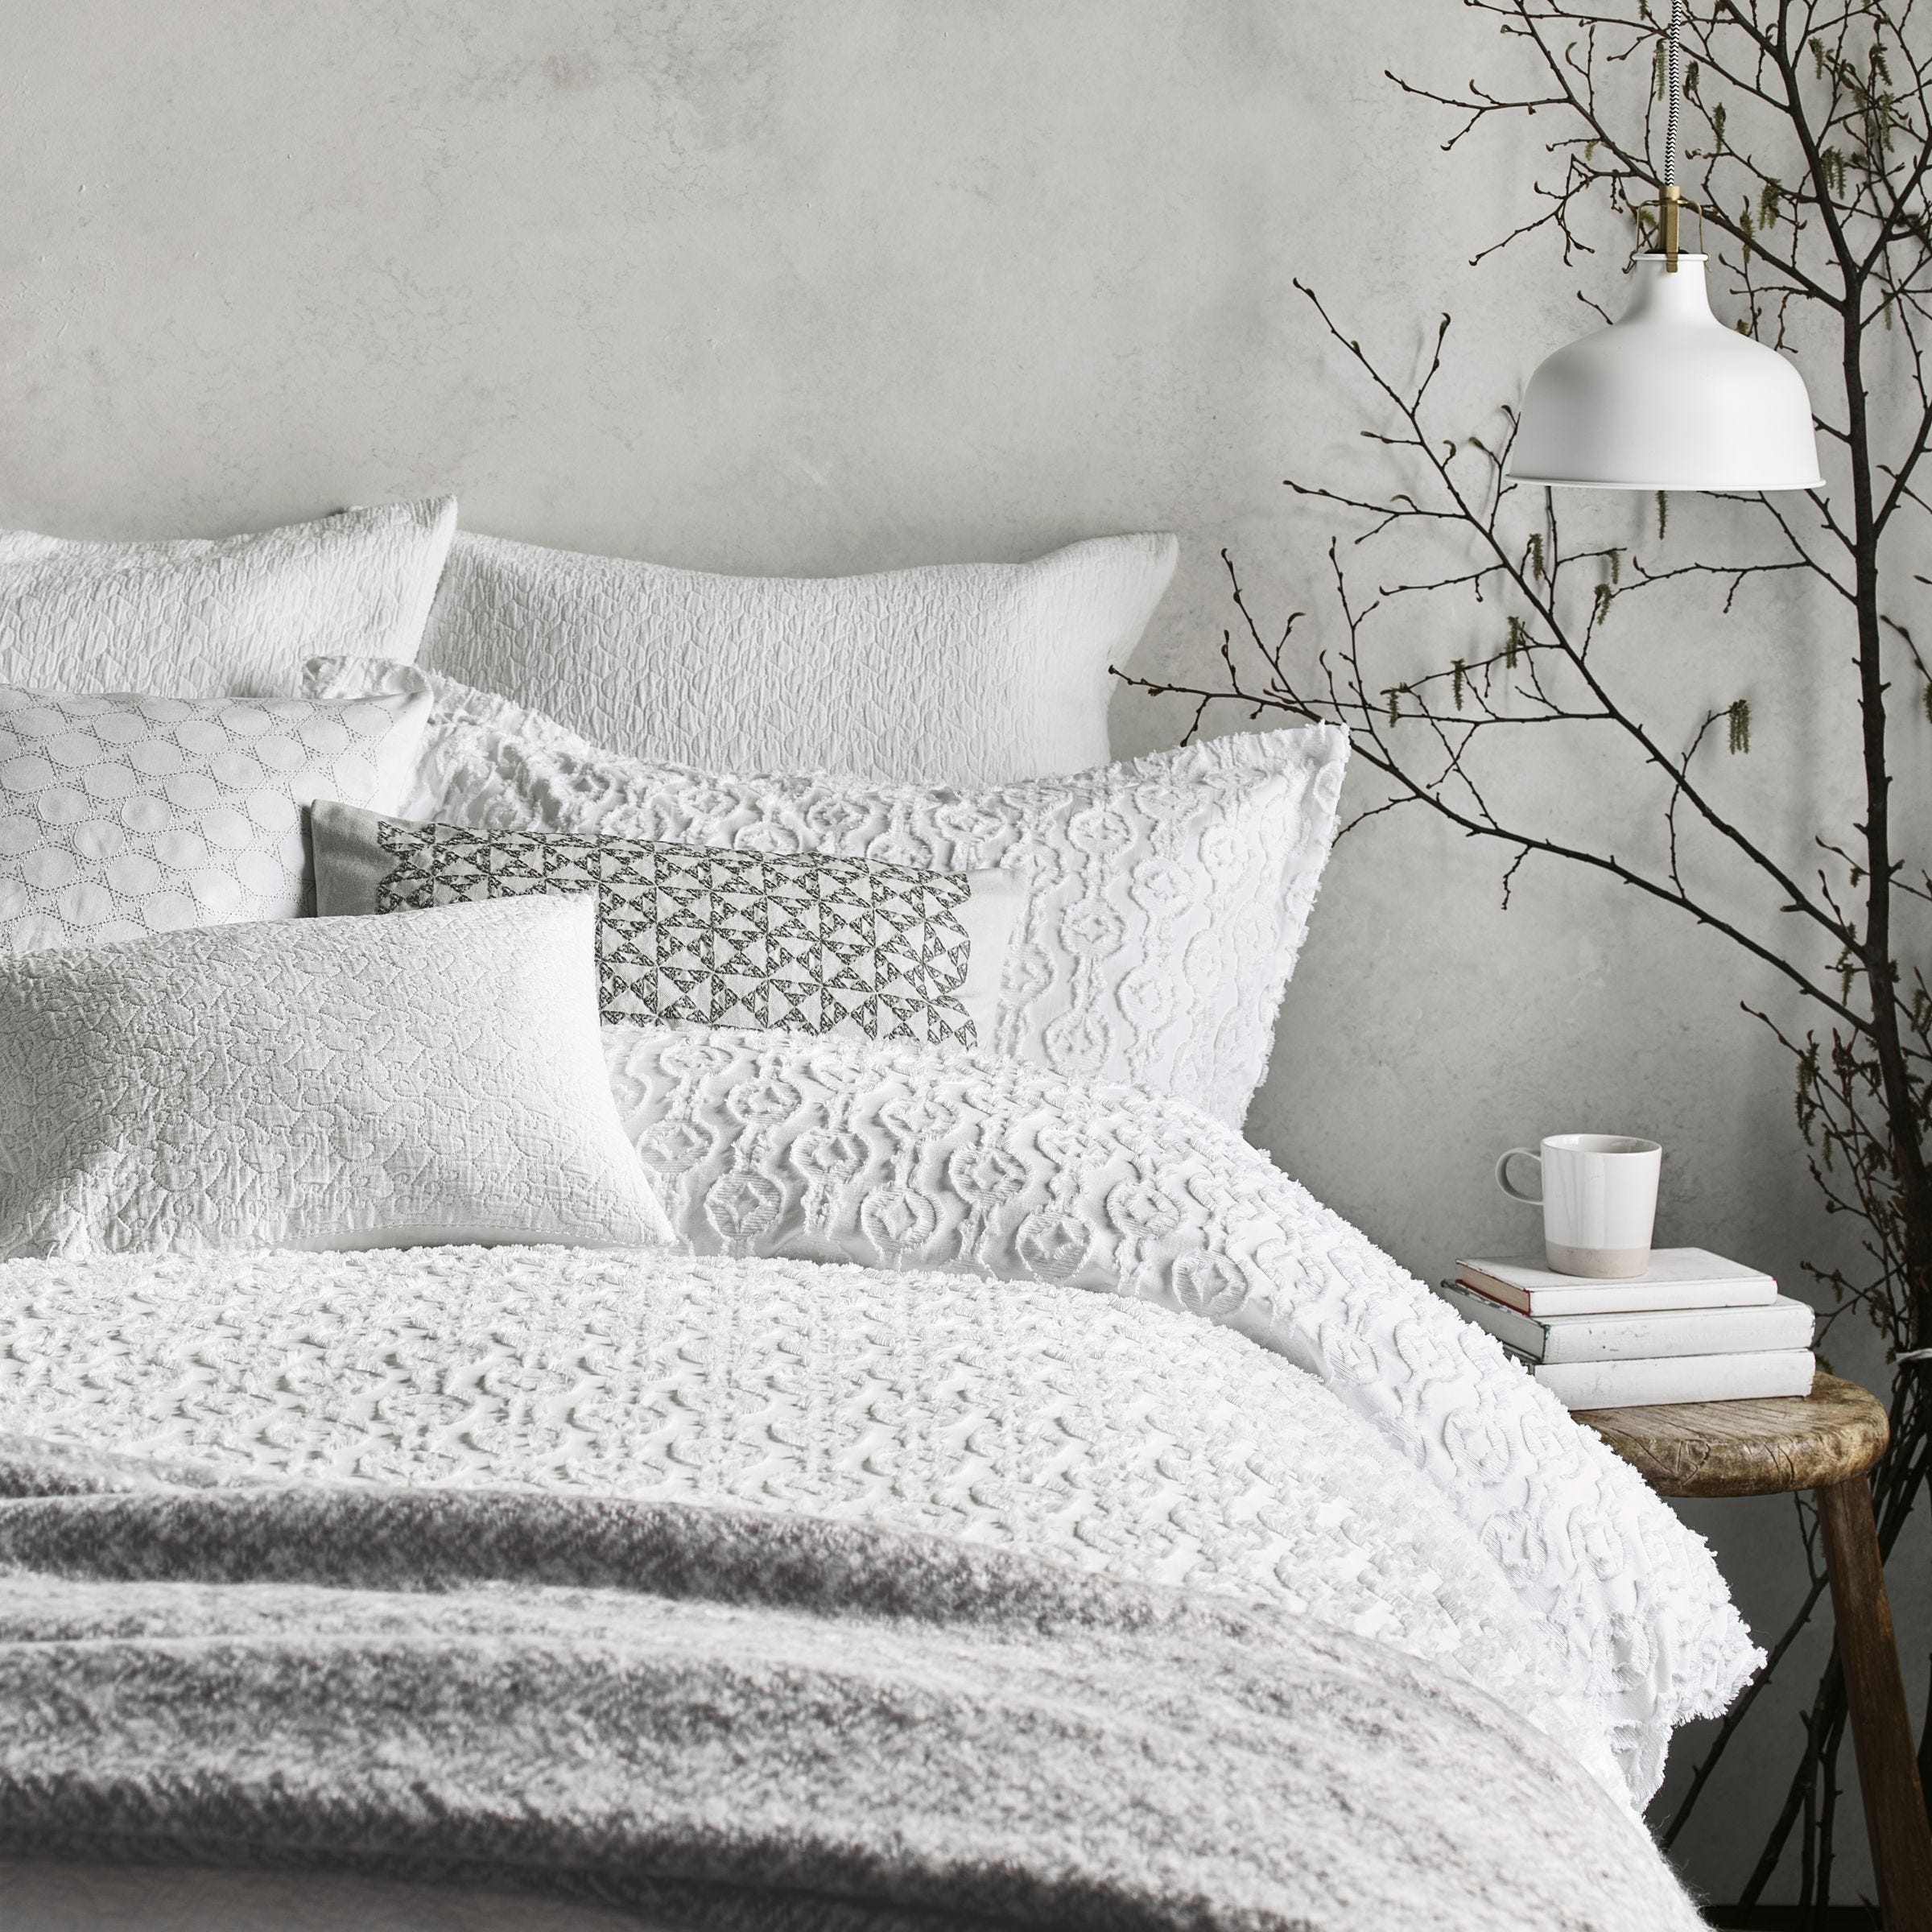 White Textured Bedding Murmur Nara Bedeck Home